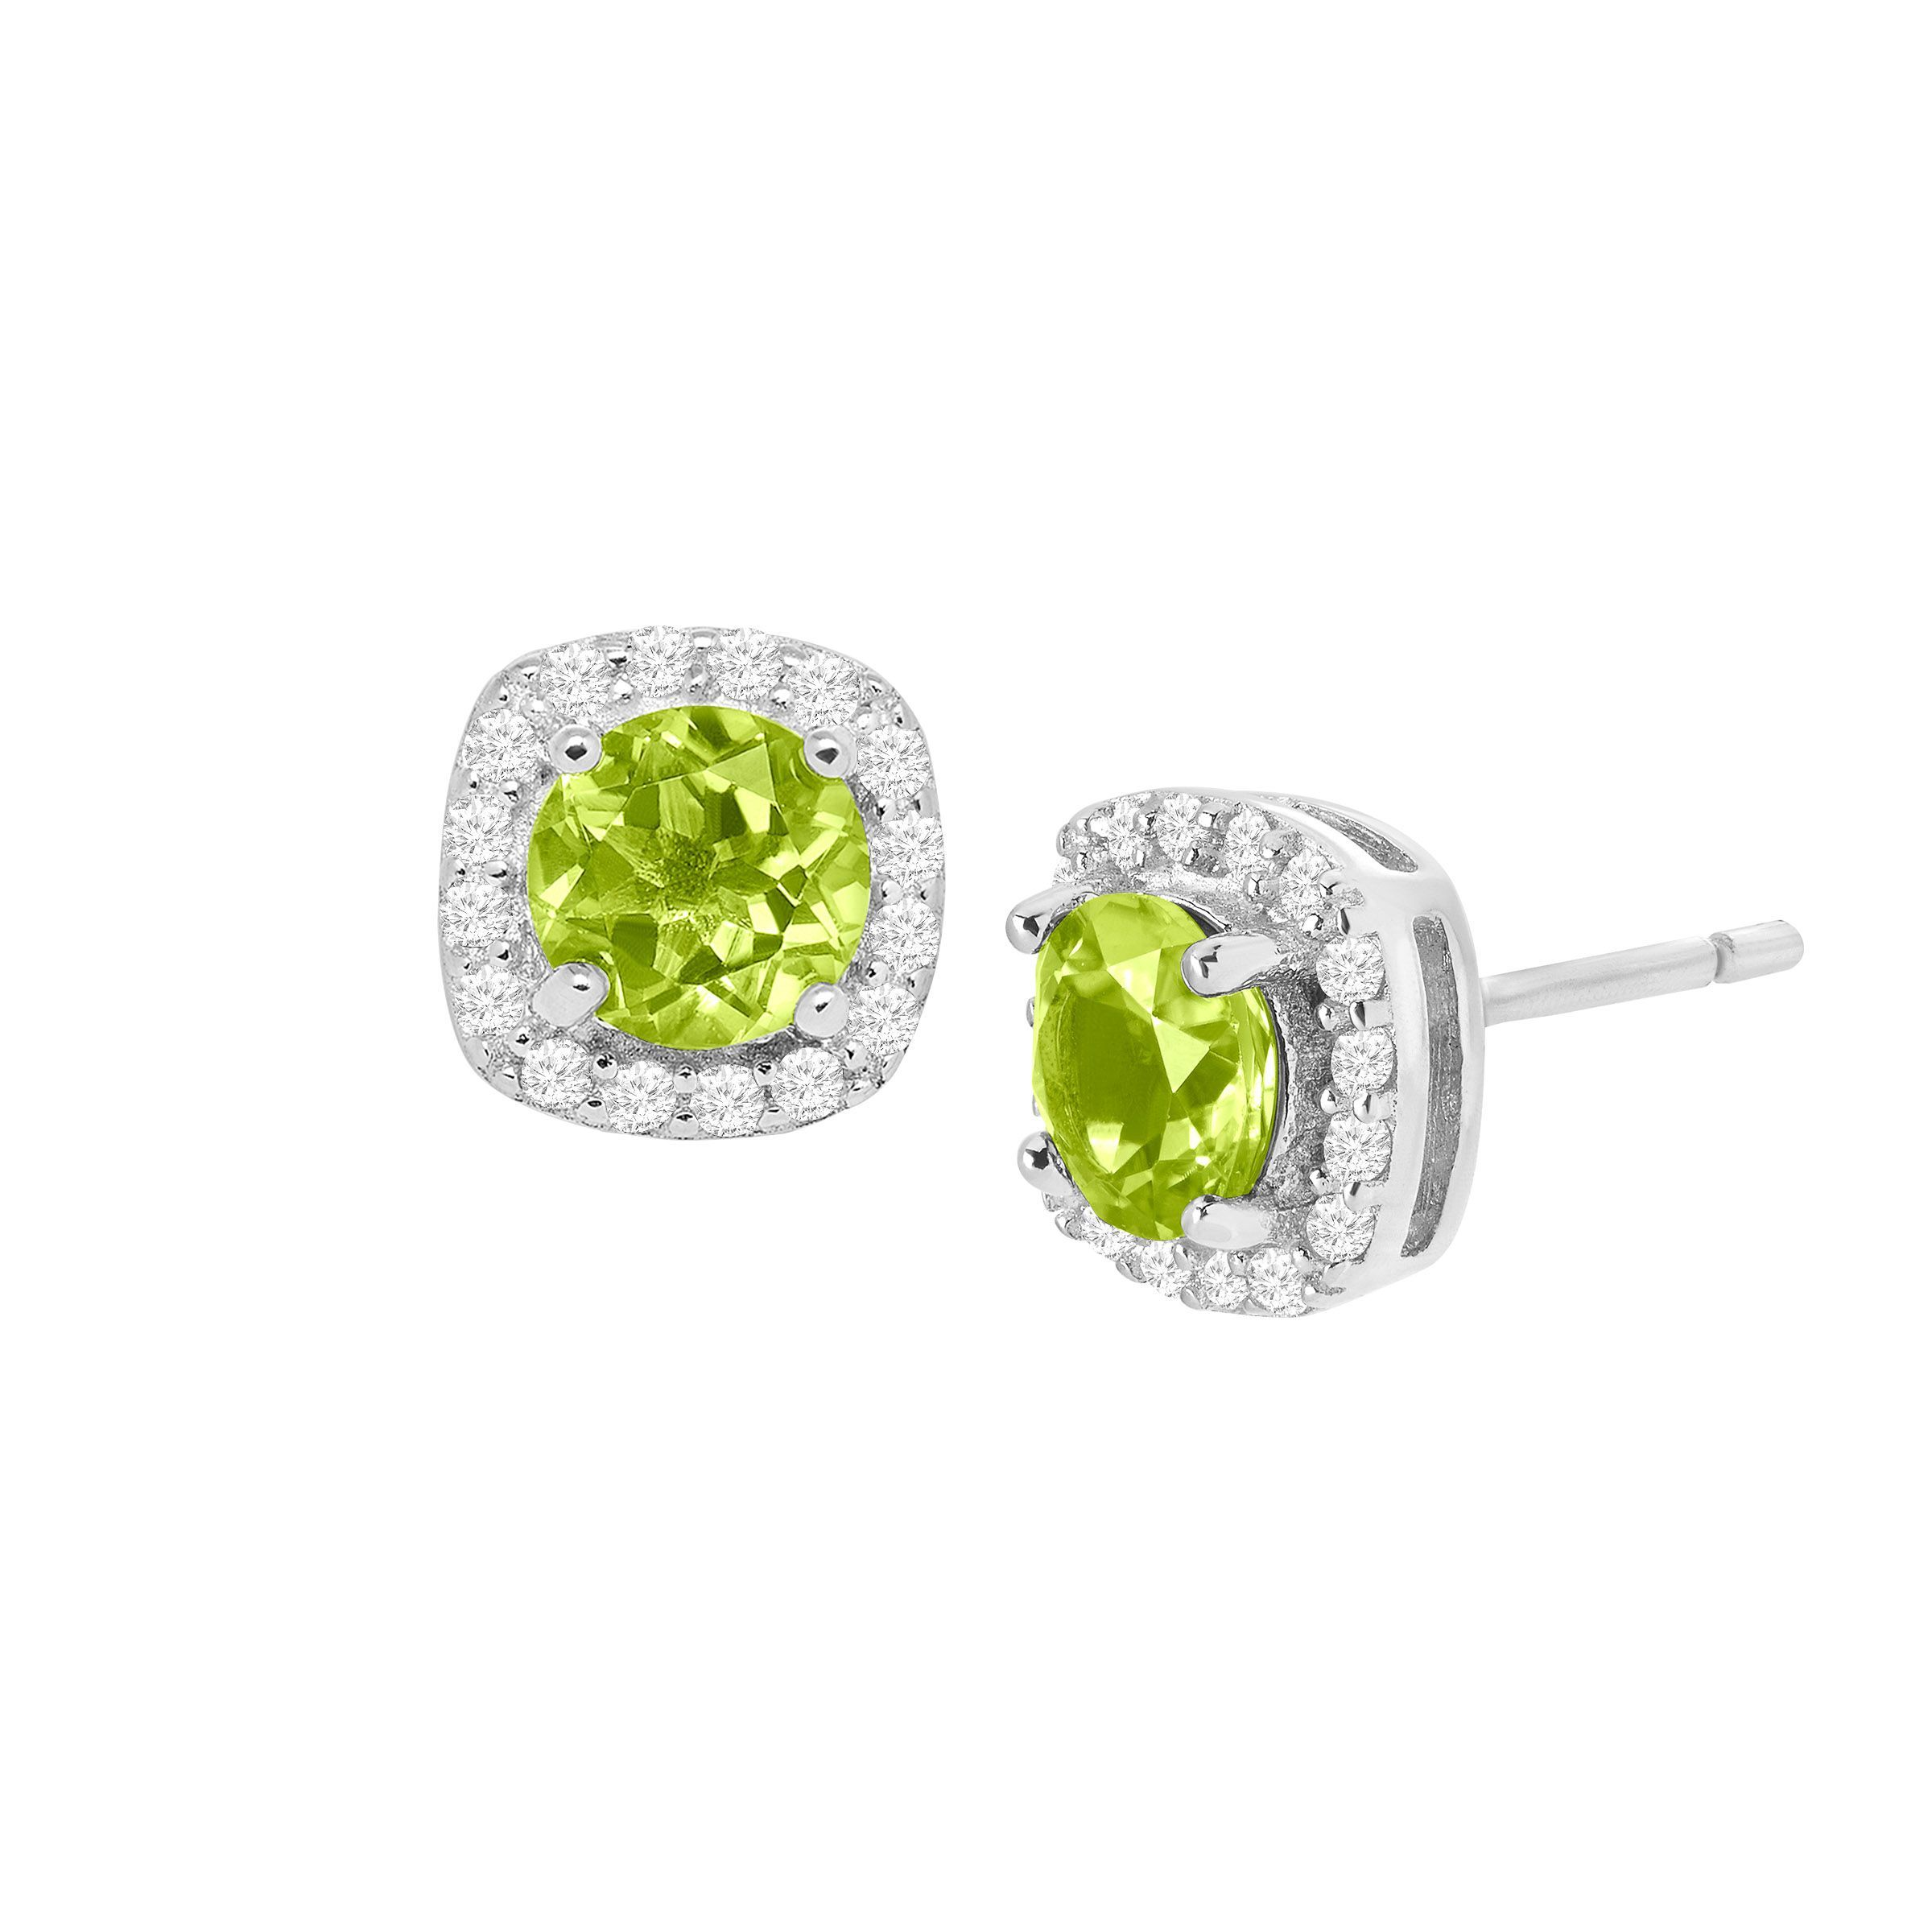 4a380fb9df650 Details about 1 1/4 ct Natural Peridot & Cubic Zirconia Stud Earrings in  Sterling Silver